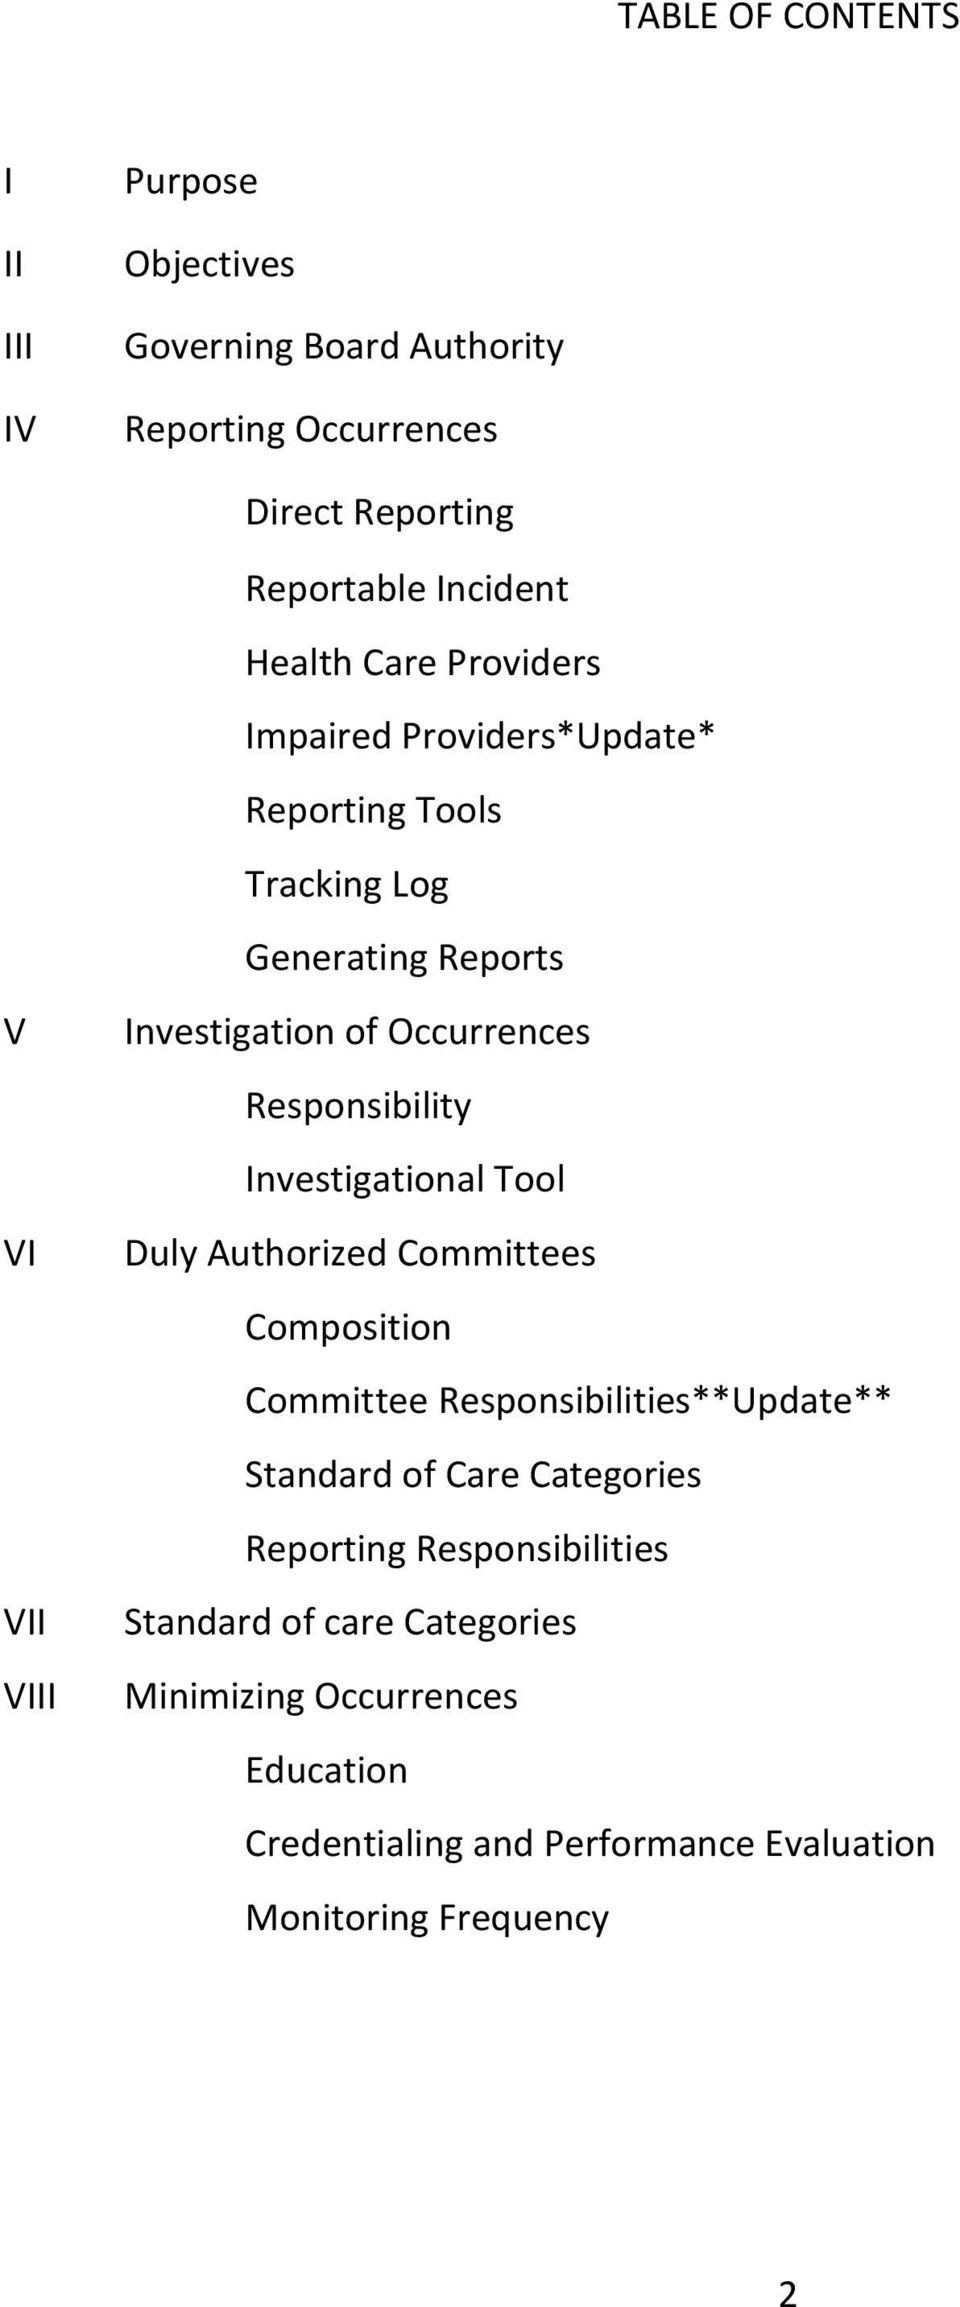 Responsibility Investigational Tool Duly Authorized Committees Composition Committee Responsibilities**Update** Standard of Care Categories